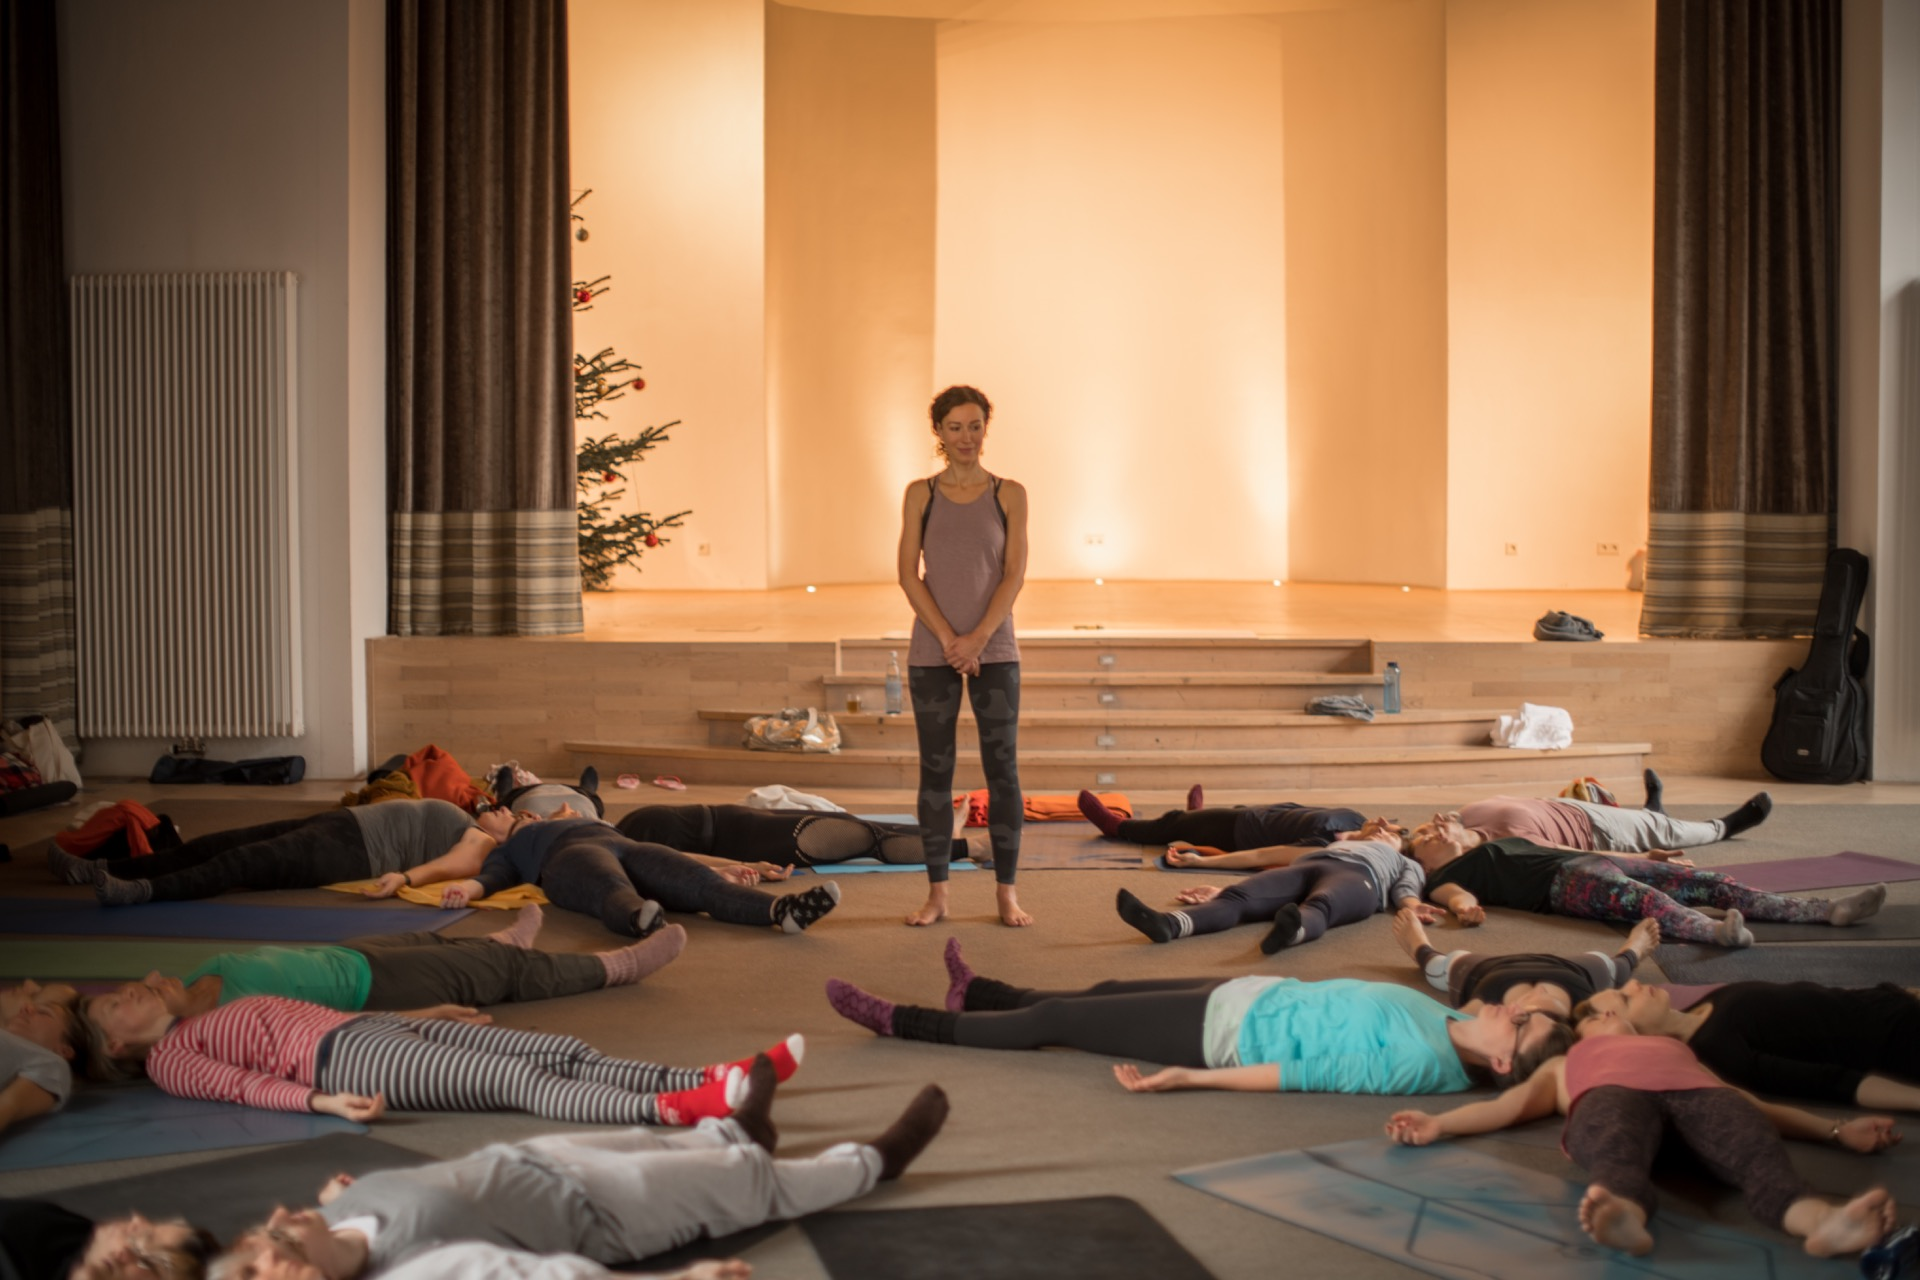 A-New-Beginning-Hie-Kim-Yoga-Retreat-Alina-Matis-Photography-008 - Hie Kim Yoga - Yoga Retreat - Yoga Workshops und Reisen